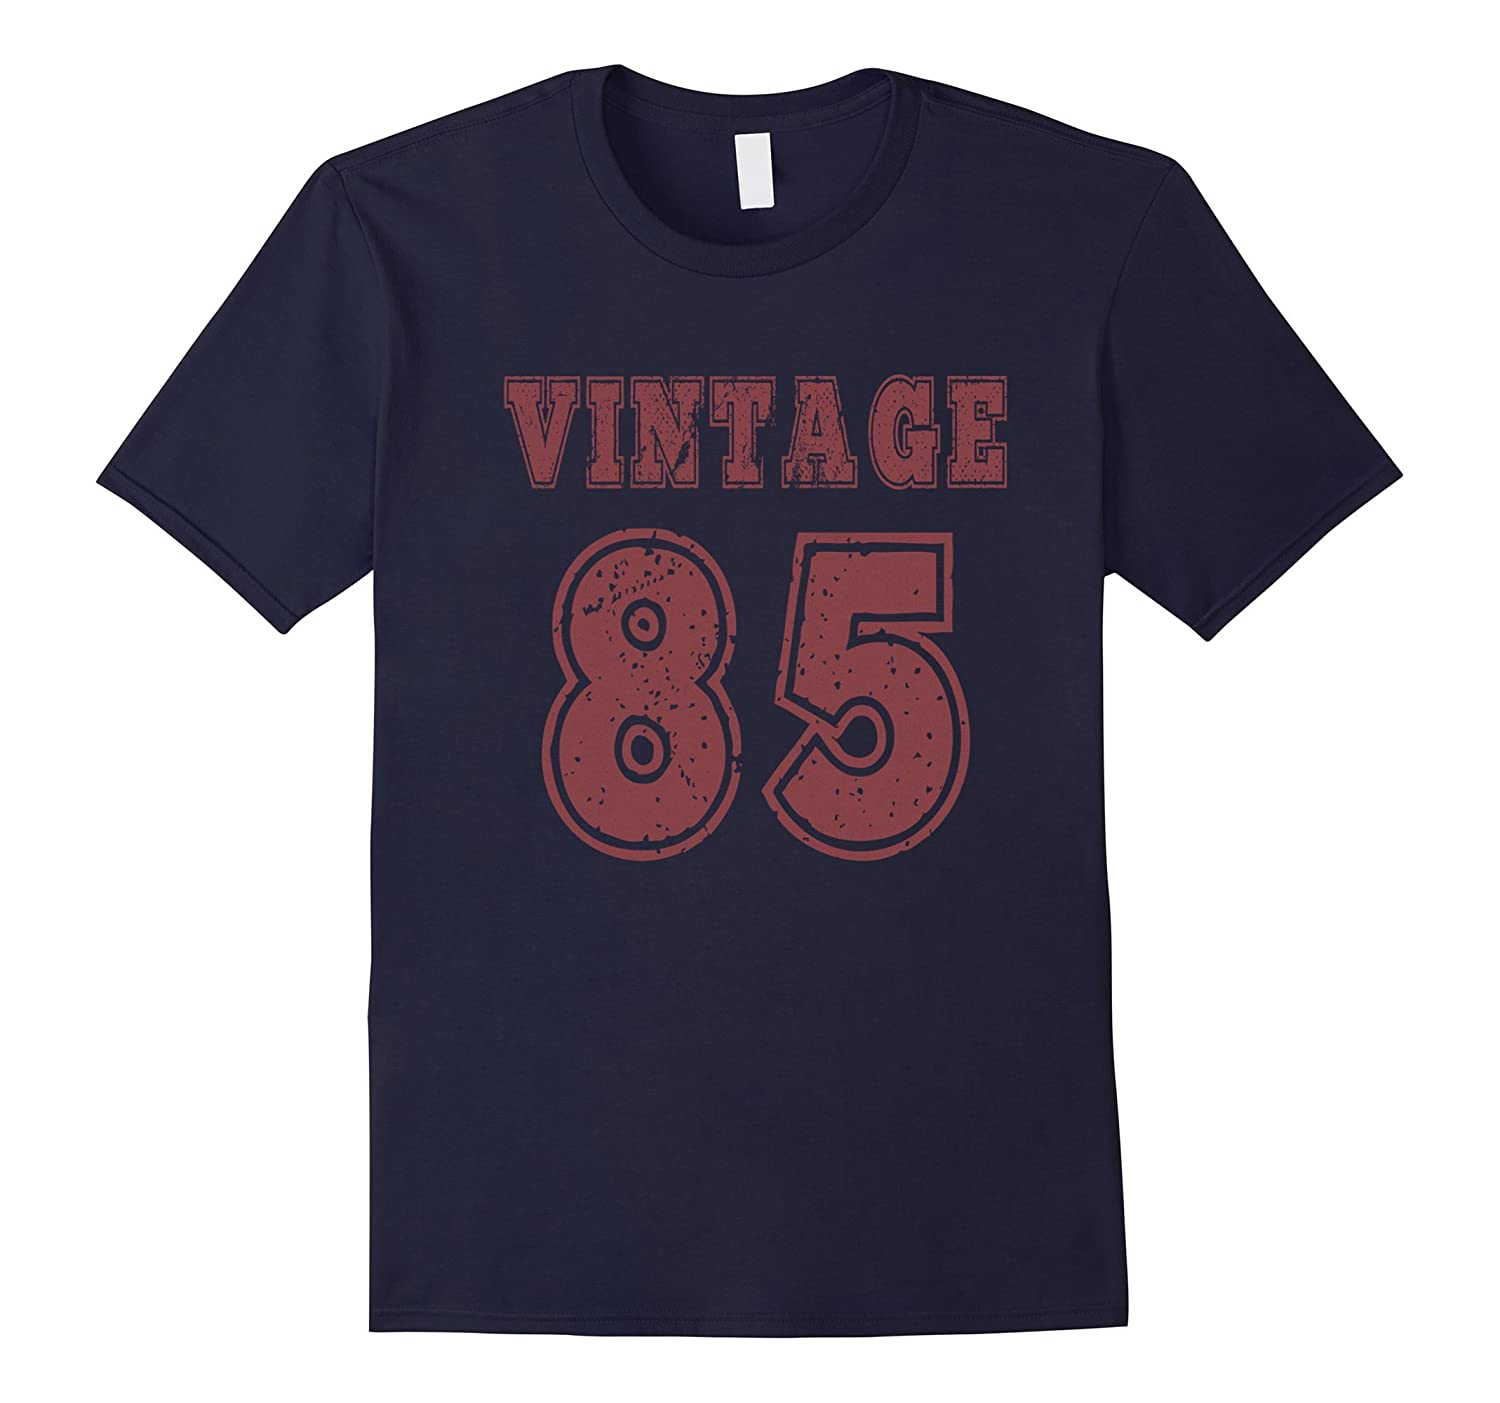 1985 Vintage Birthday Gift T-shirt For Men Women-TH